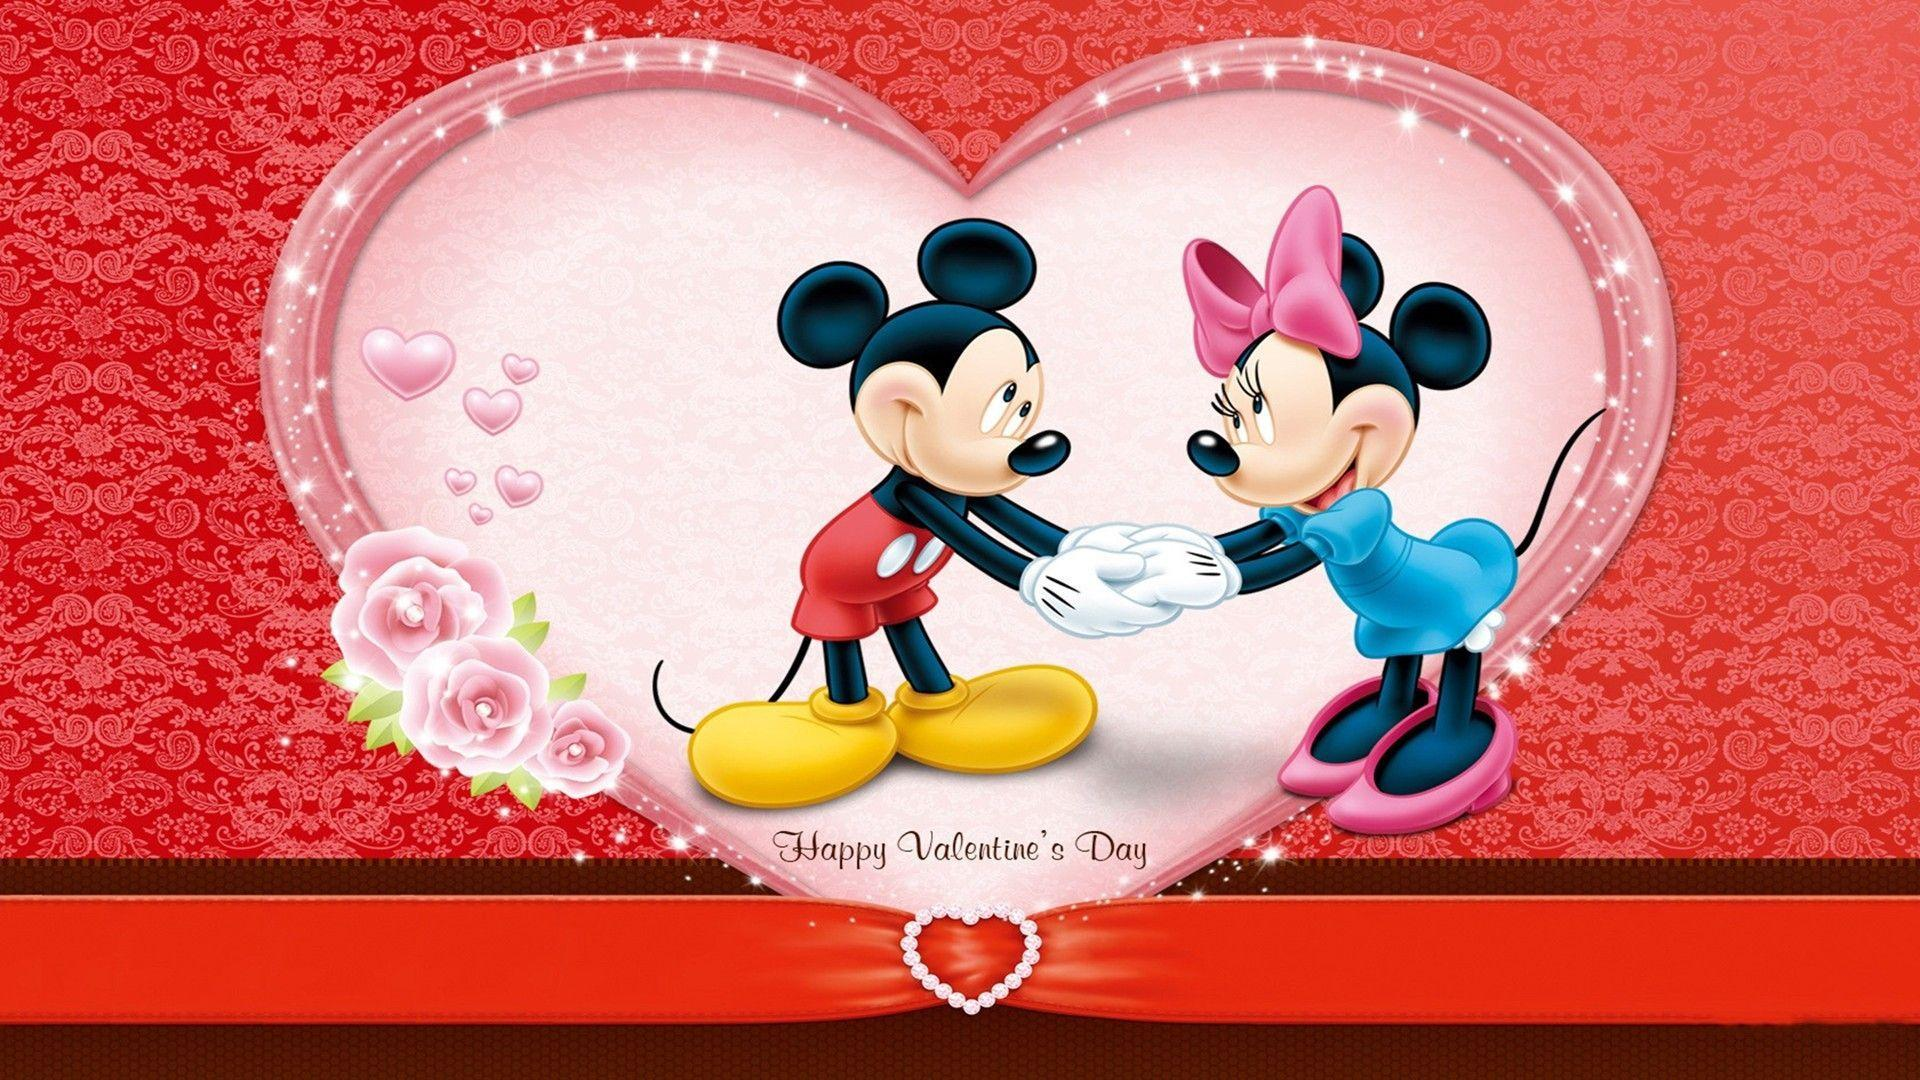 Cute Mickey Wishes Happy Valentines Day Wallpa #12086 Wallpaper ...